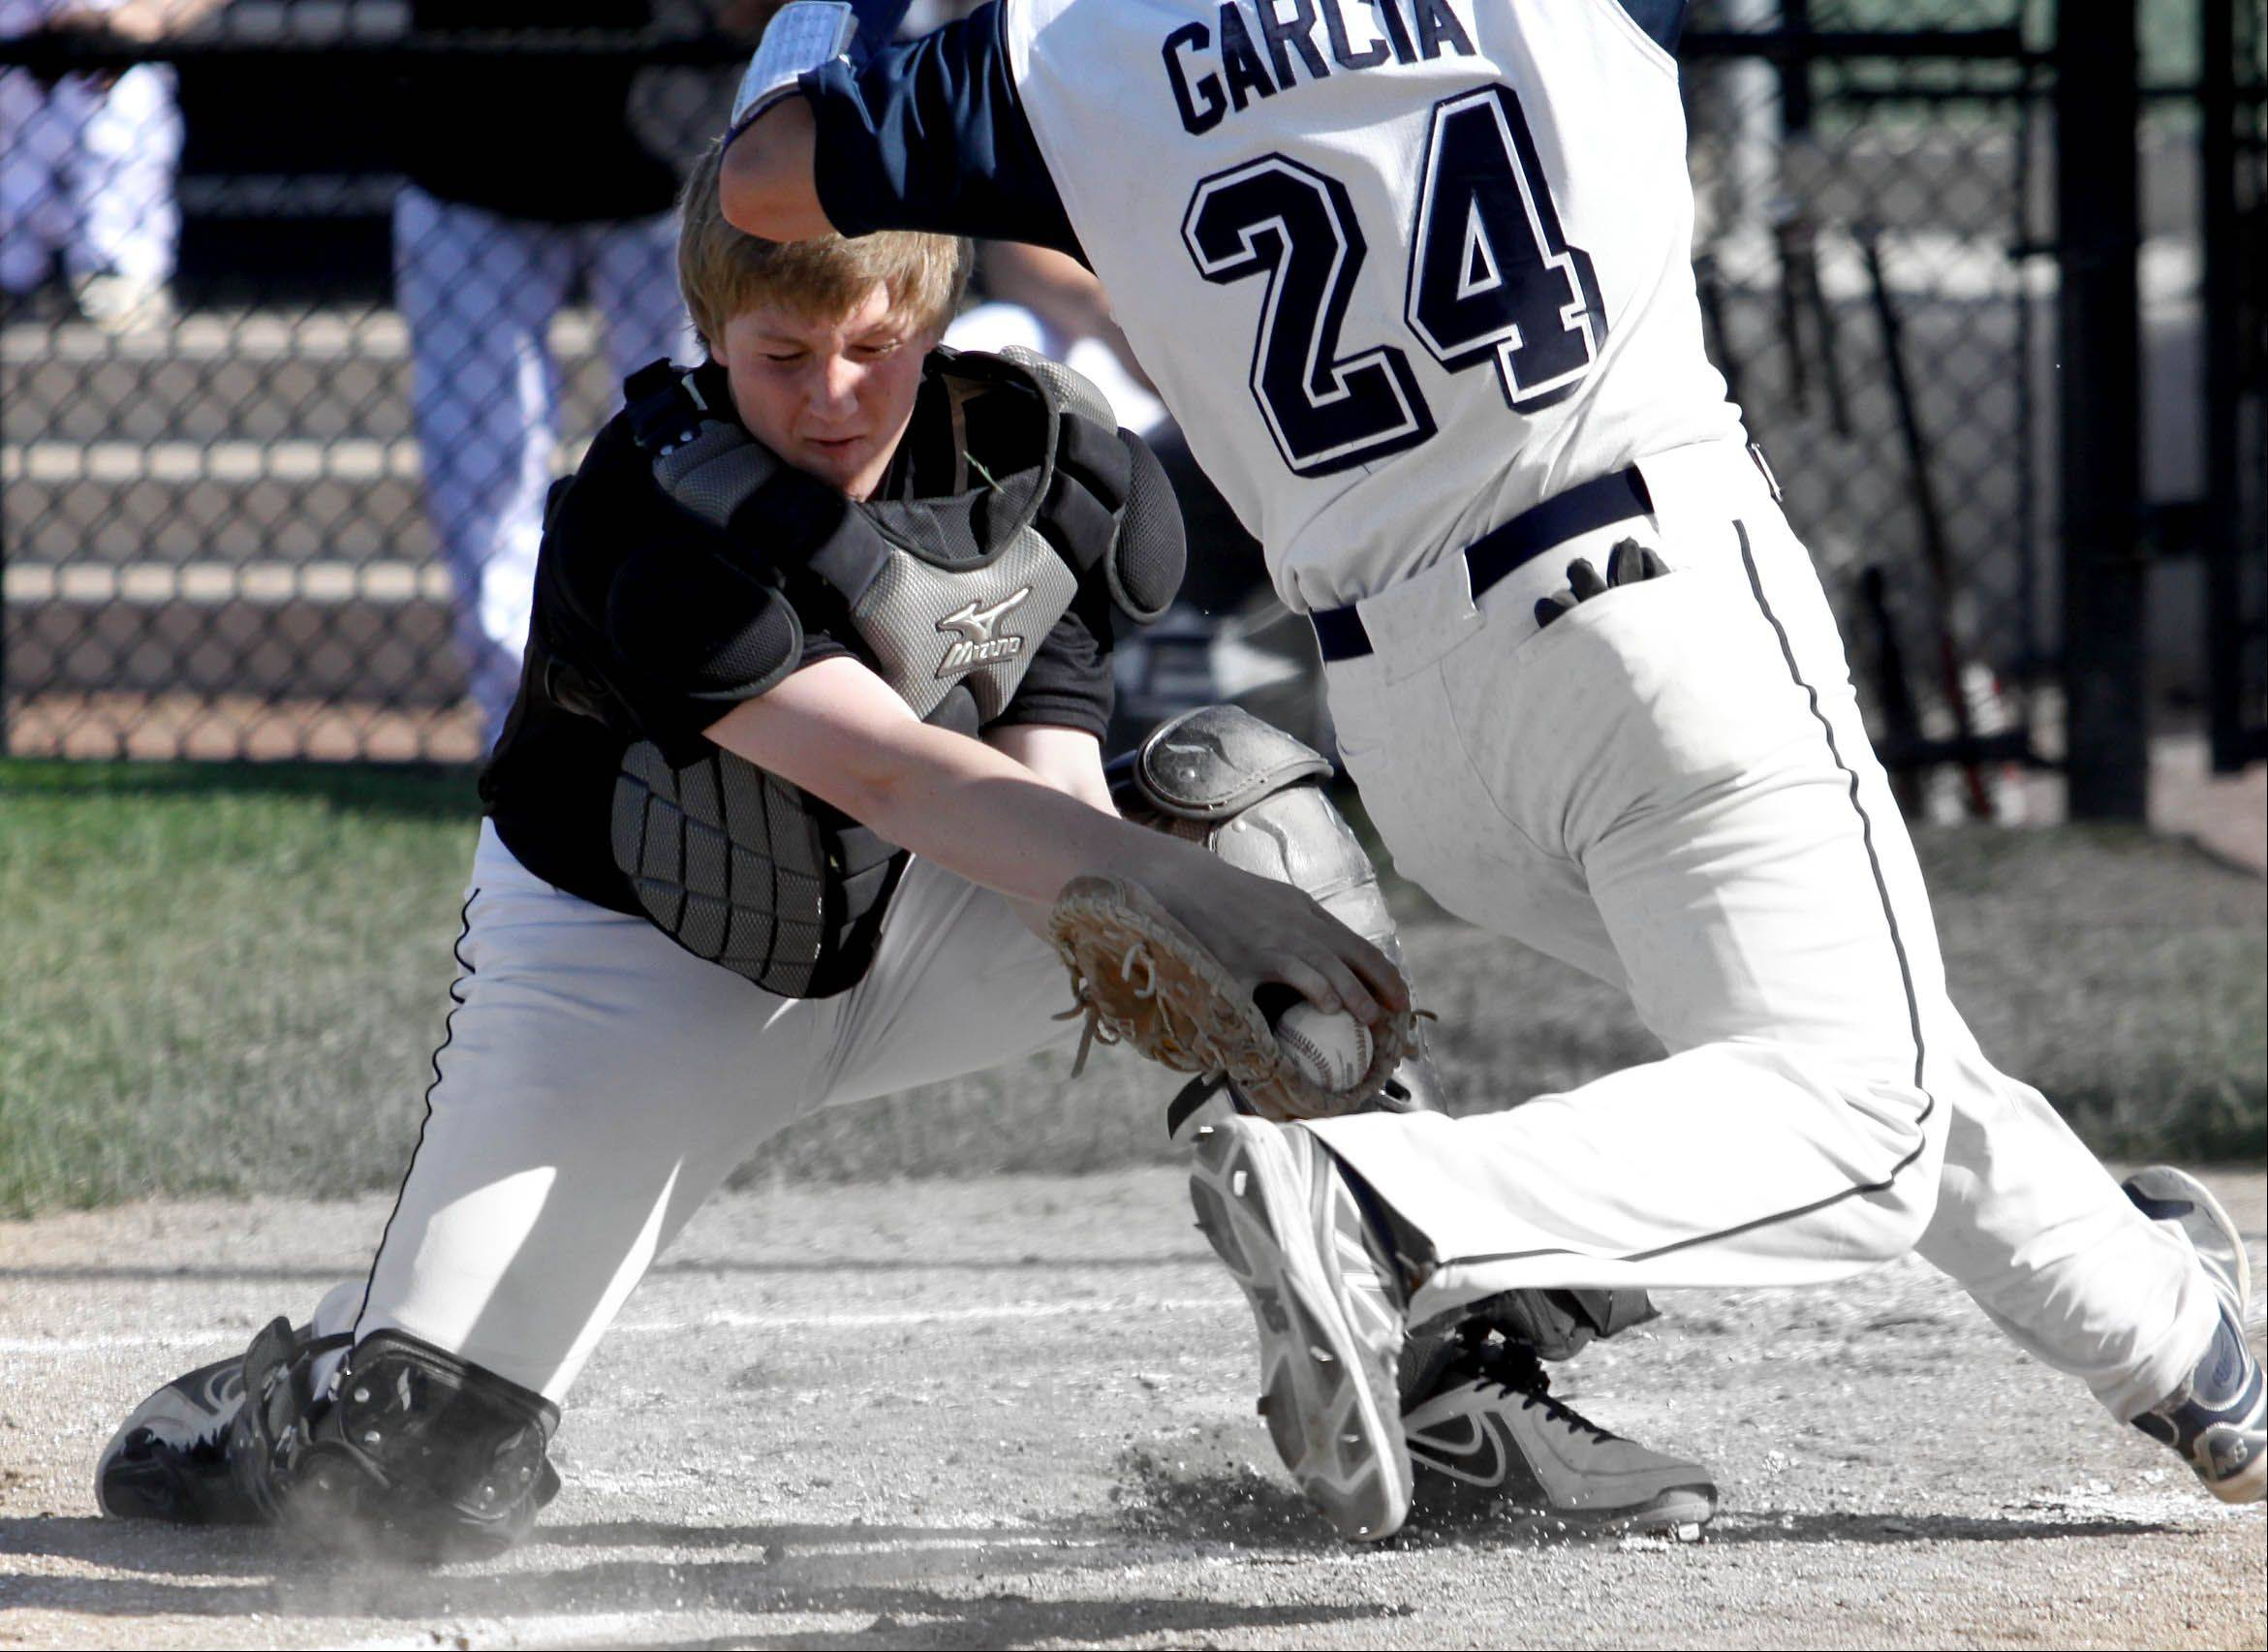 Bev Horne/bhorne@dailyherald.comCatcher Troy Caminitti of Streamwood tags out Jordan Garcia of Addison Trail at home plate in baseball action on Monday in Addison.